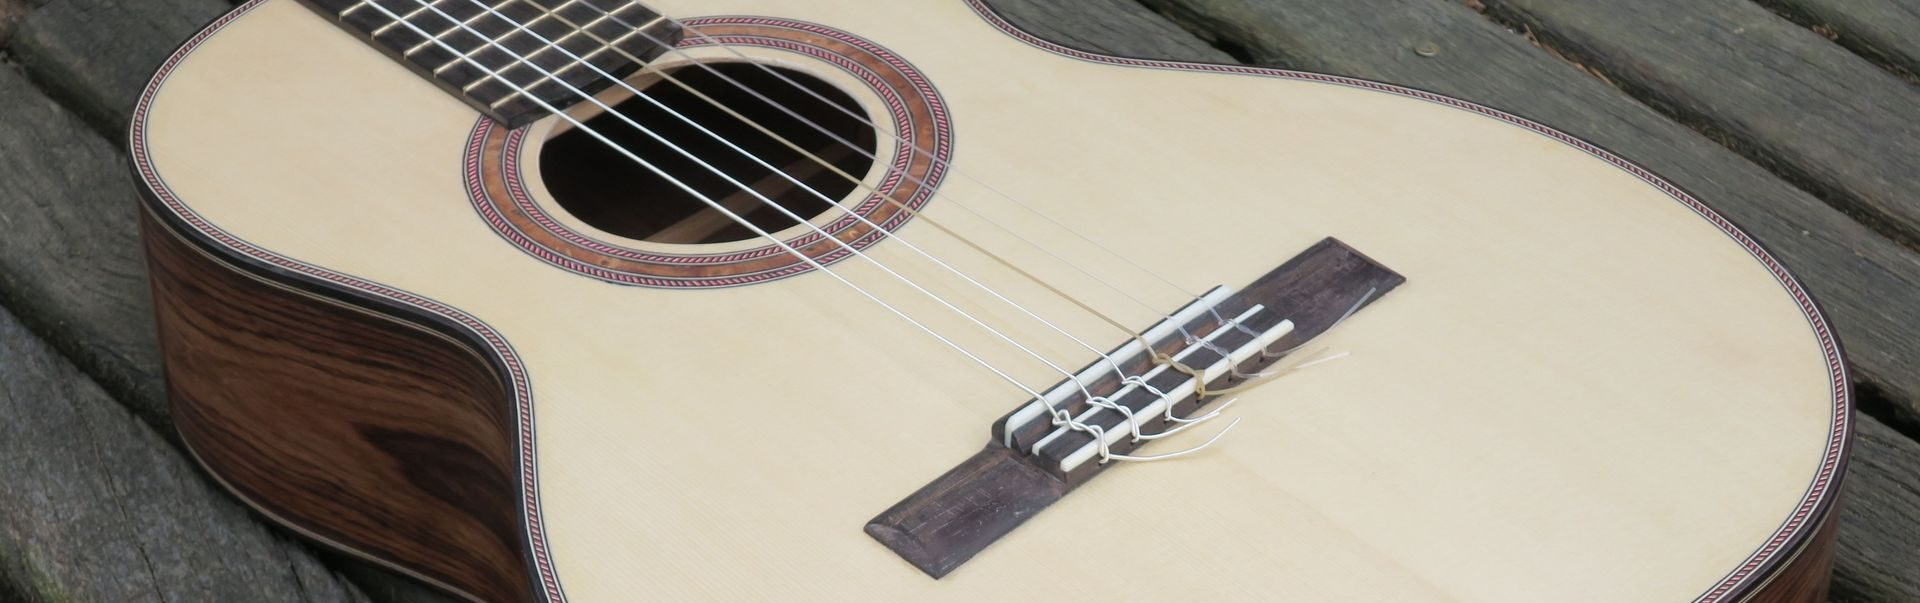 Media-Tag: <span>G guitars</span>